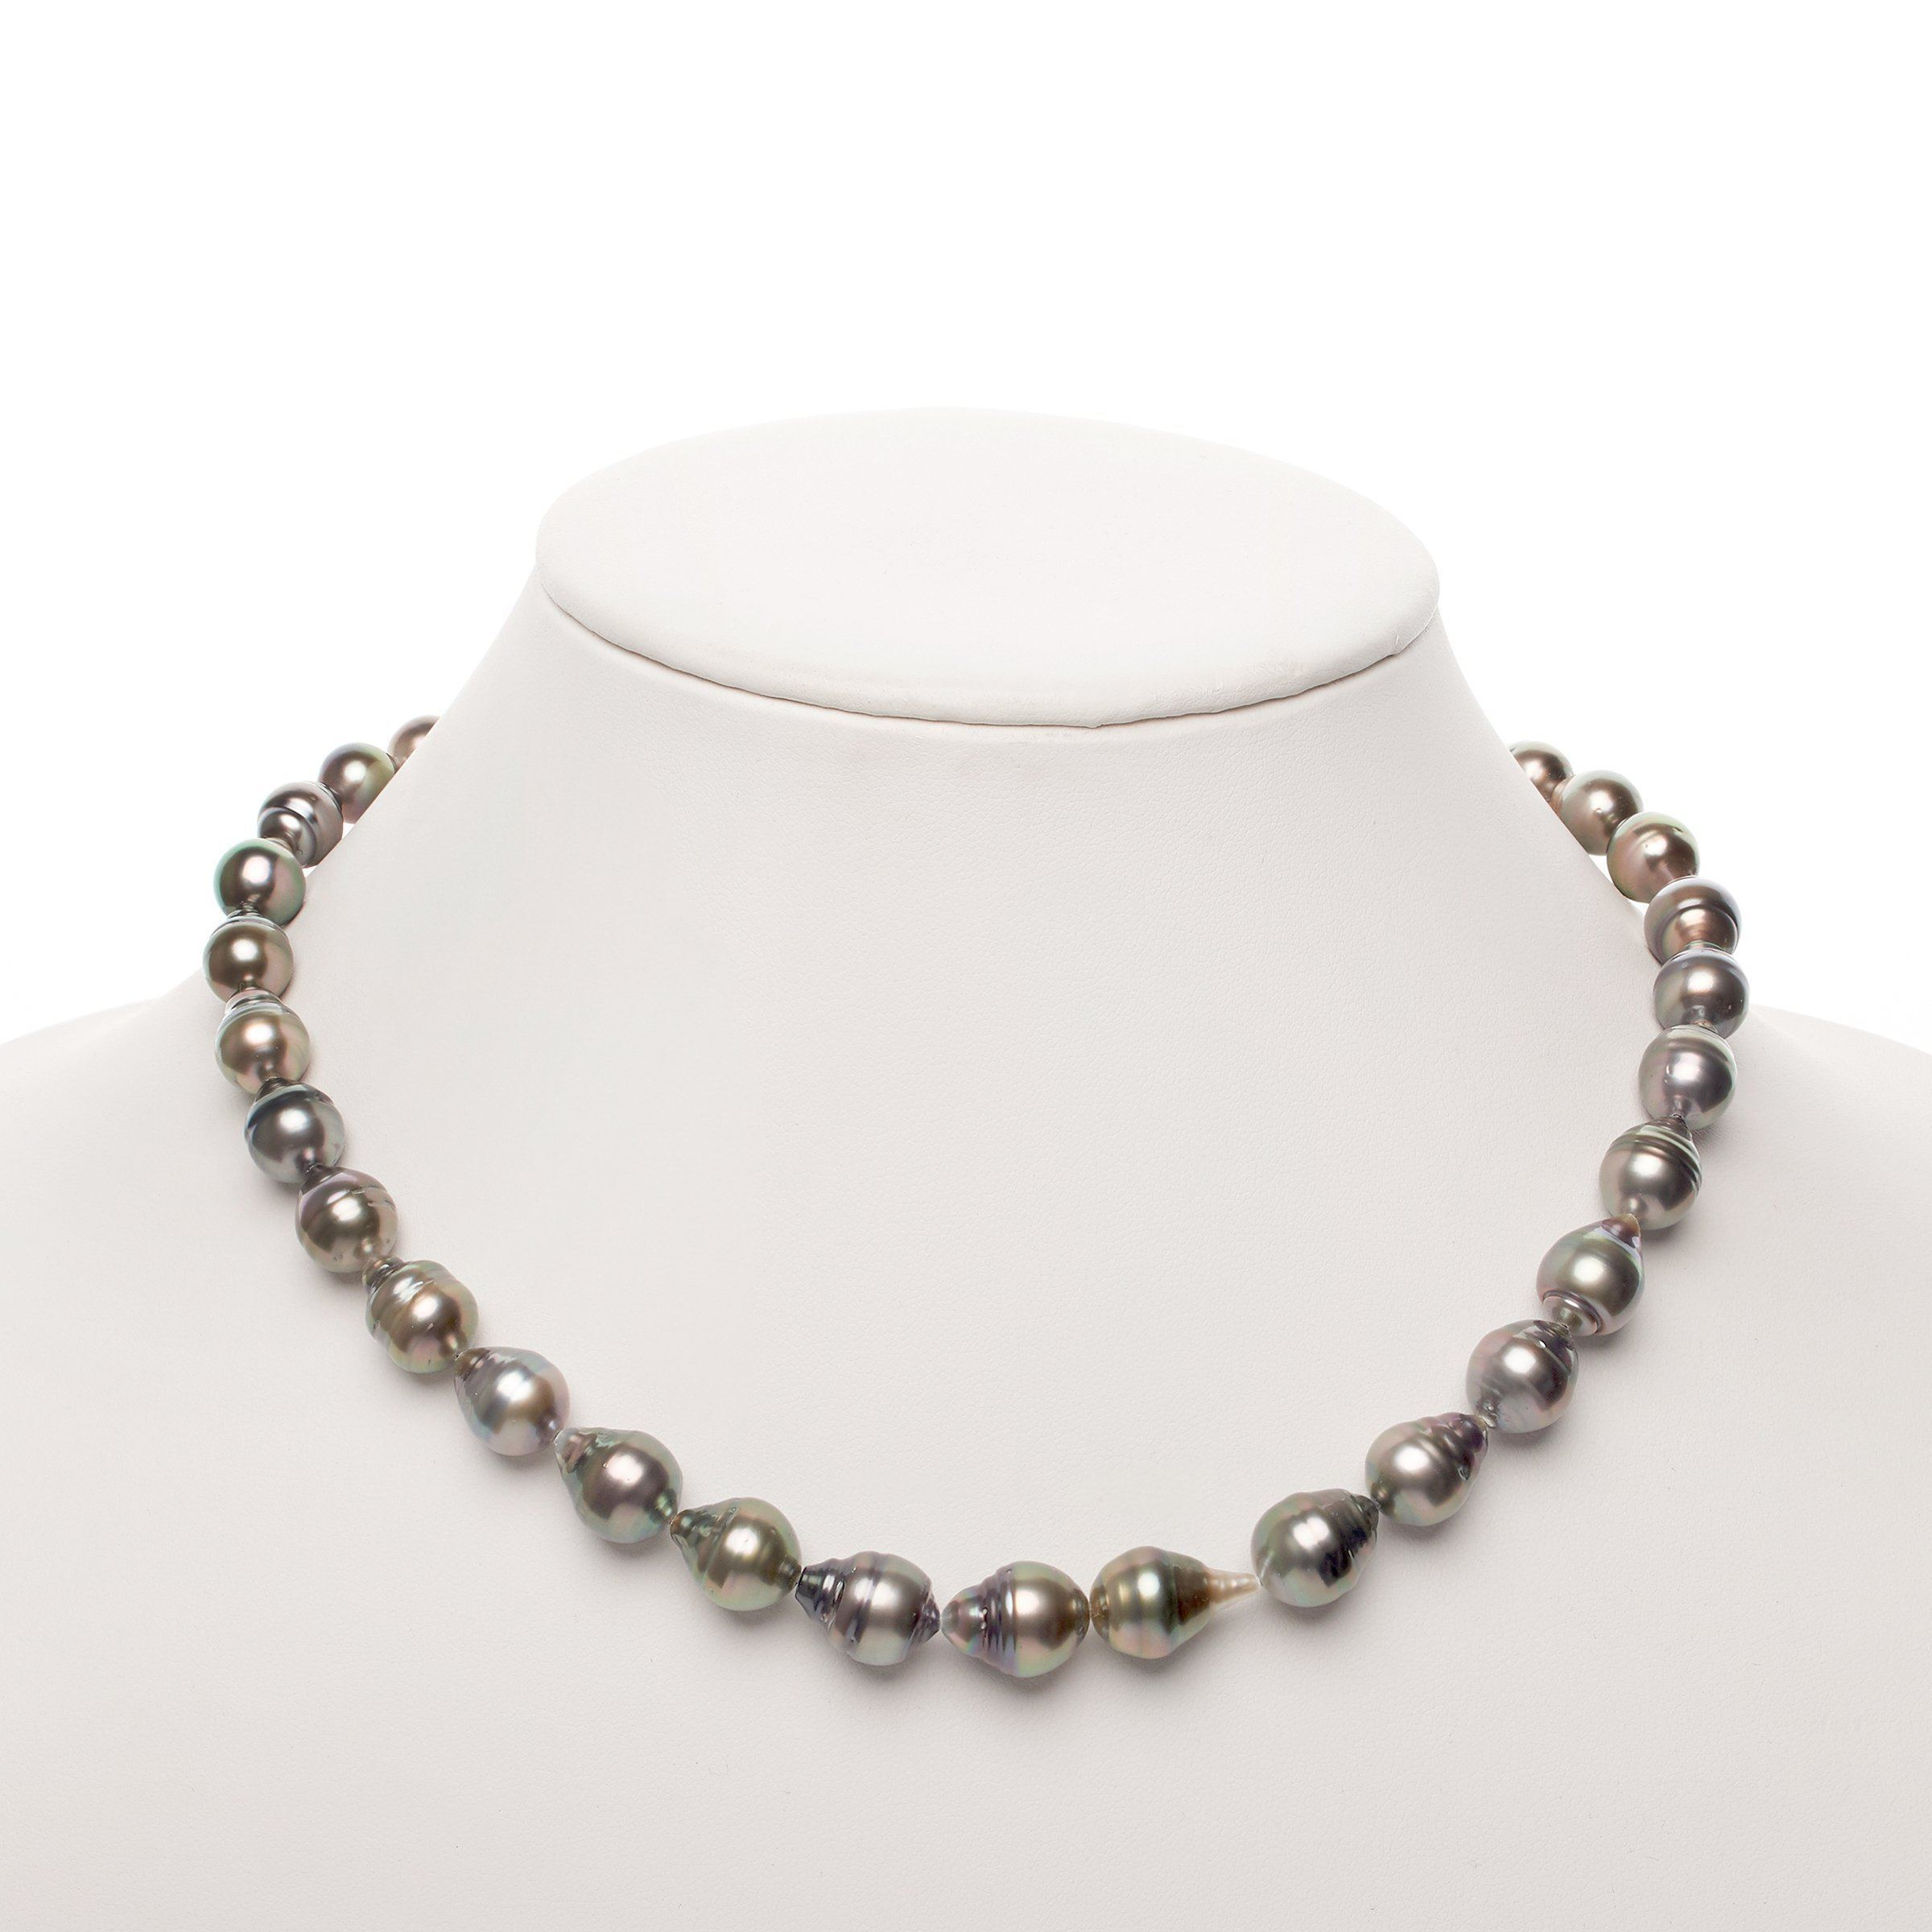 8.3-10.8 mm Silver Baroque Tahitian Necklace with Pistachio Overtones